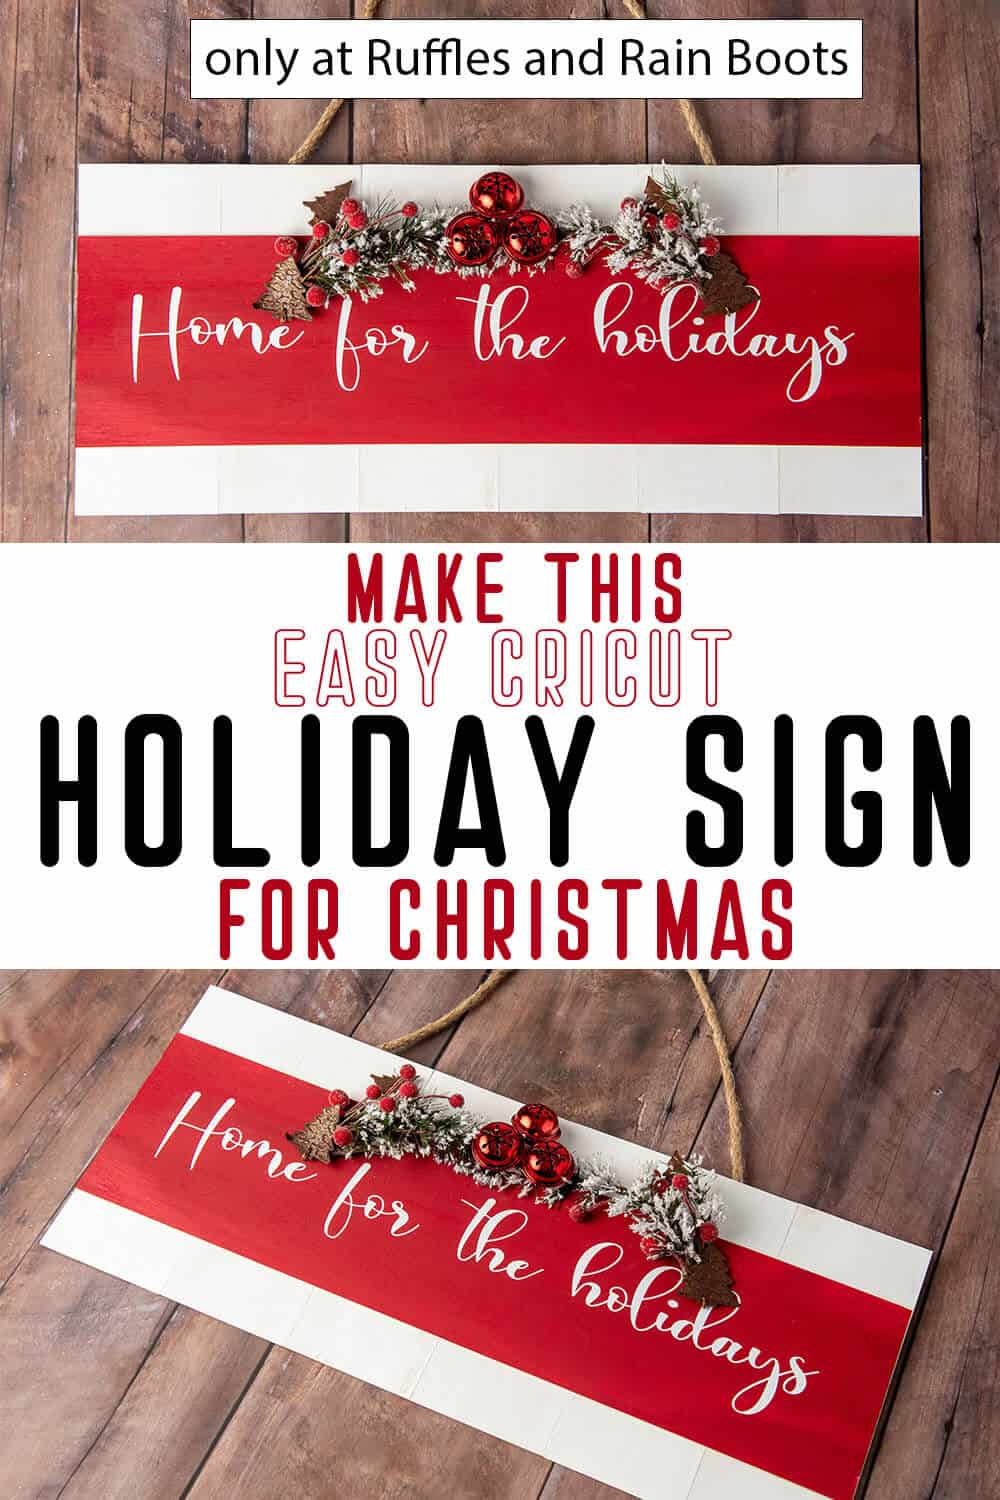 photo colalge of easy DIY home for the holidays wood sign cricut craft for christmas with text which reads make this easy cricut holiday sign for christmas